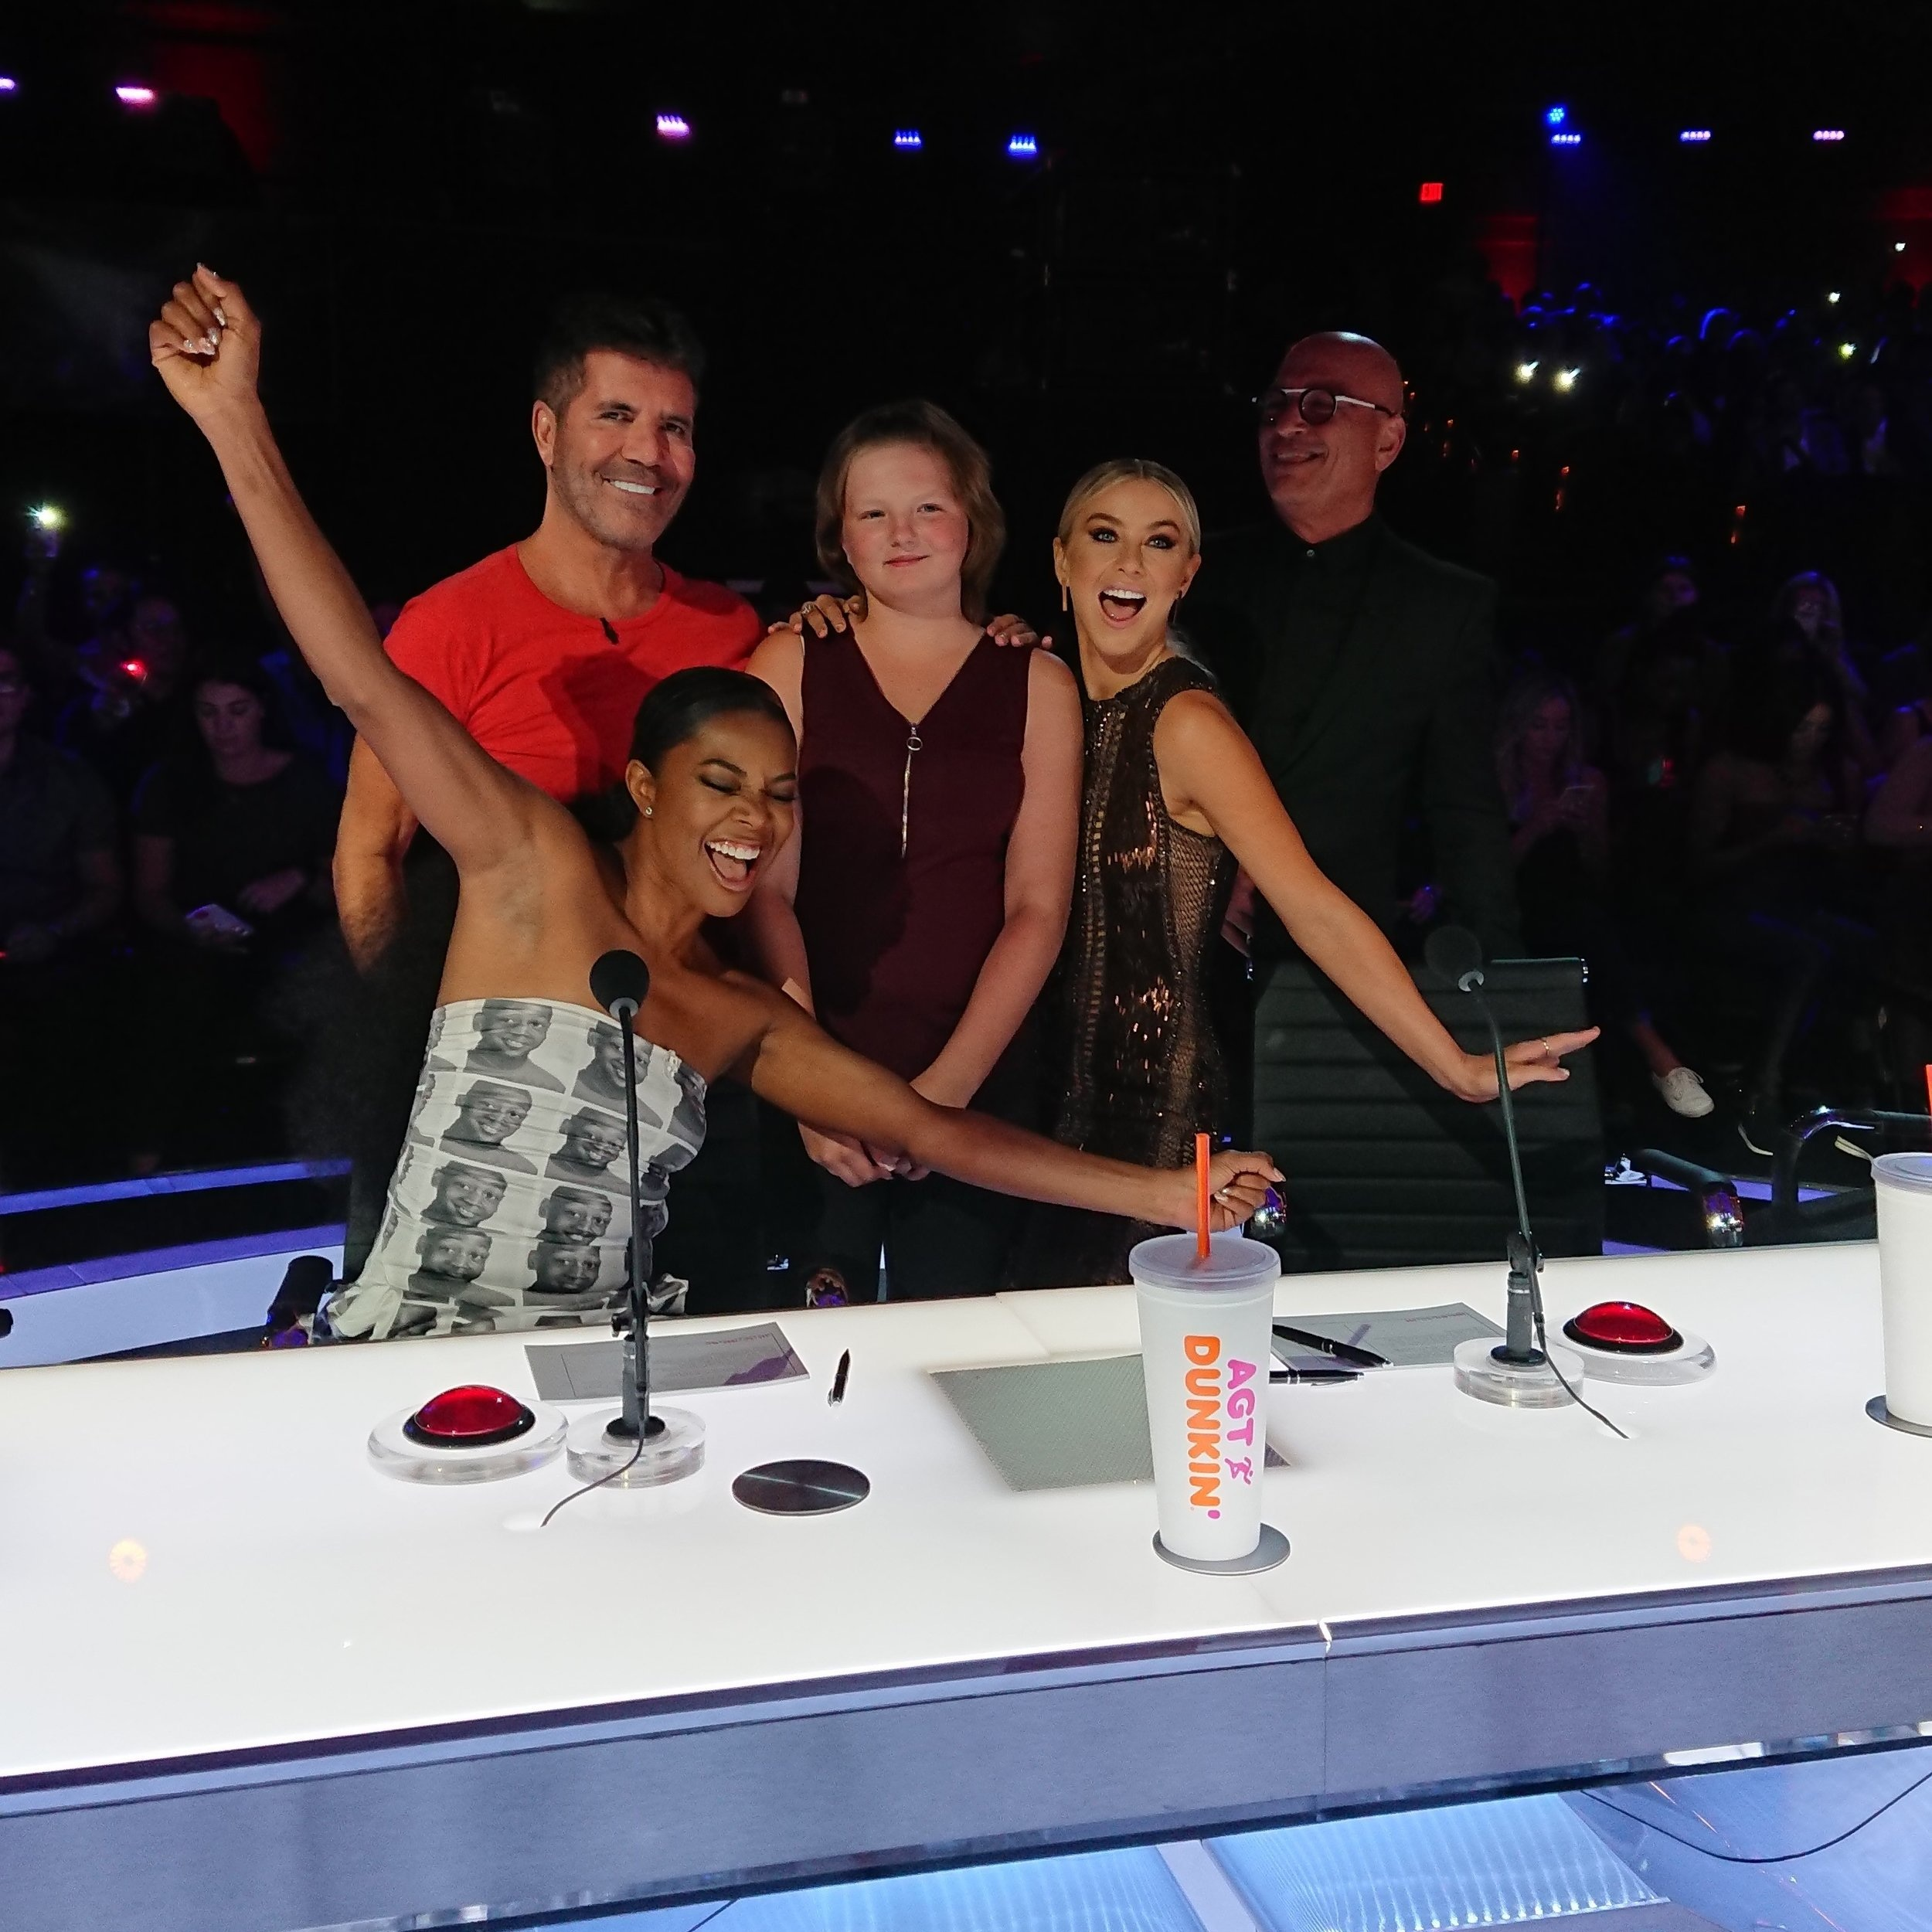 Pictured:  Dream Kid  Kylie  has her dream to meet the judges from  America's Got Talent  come true!